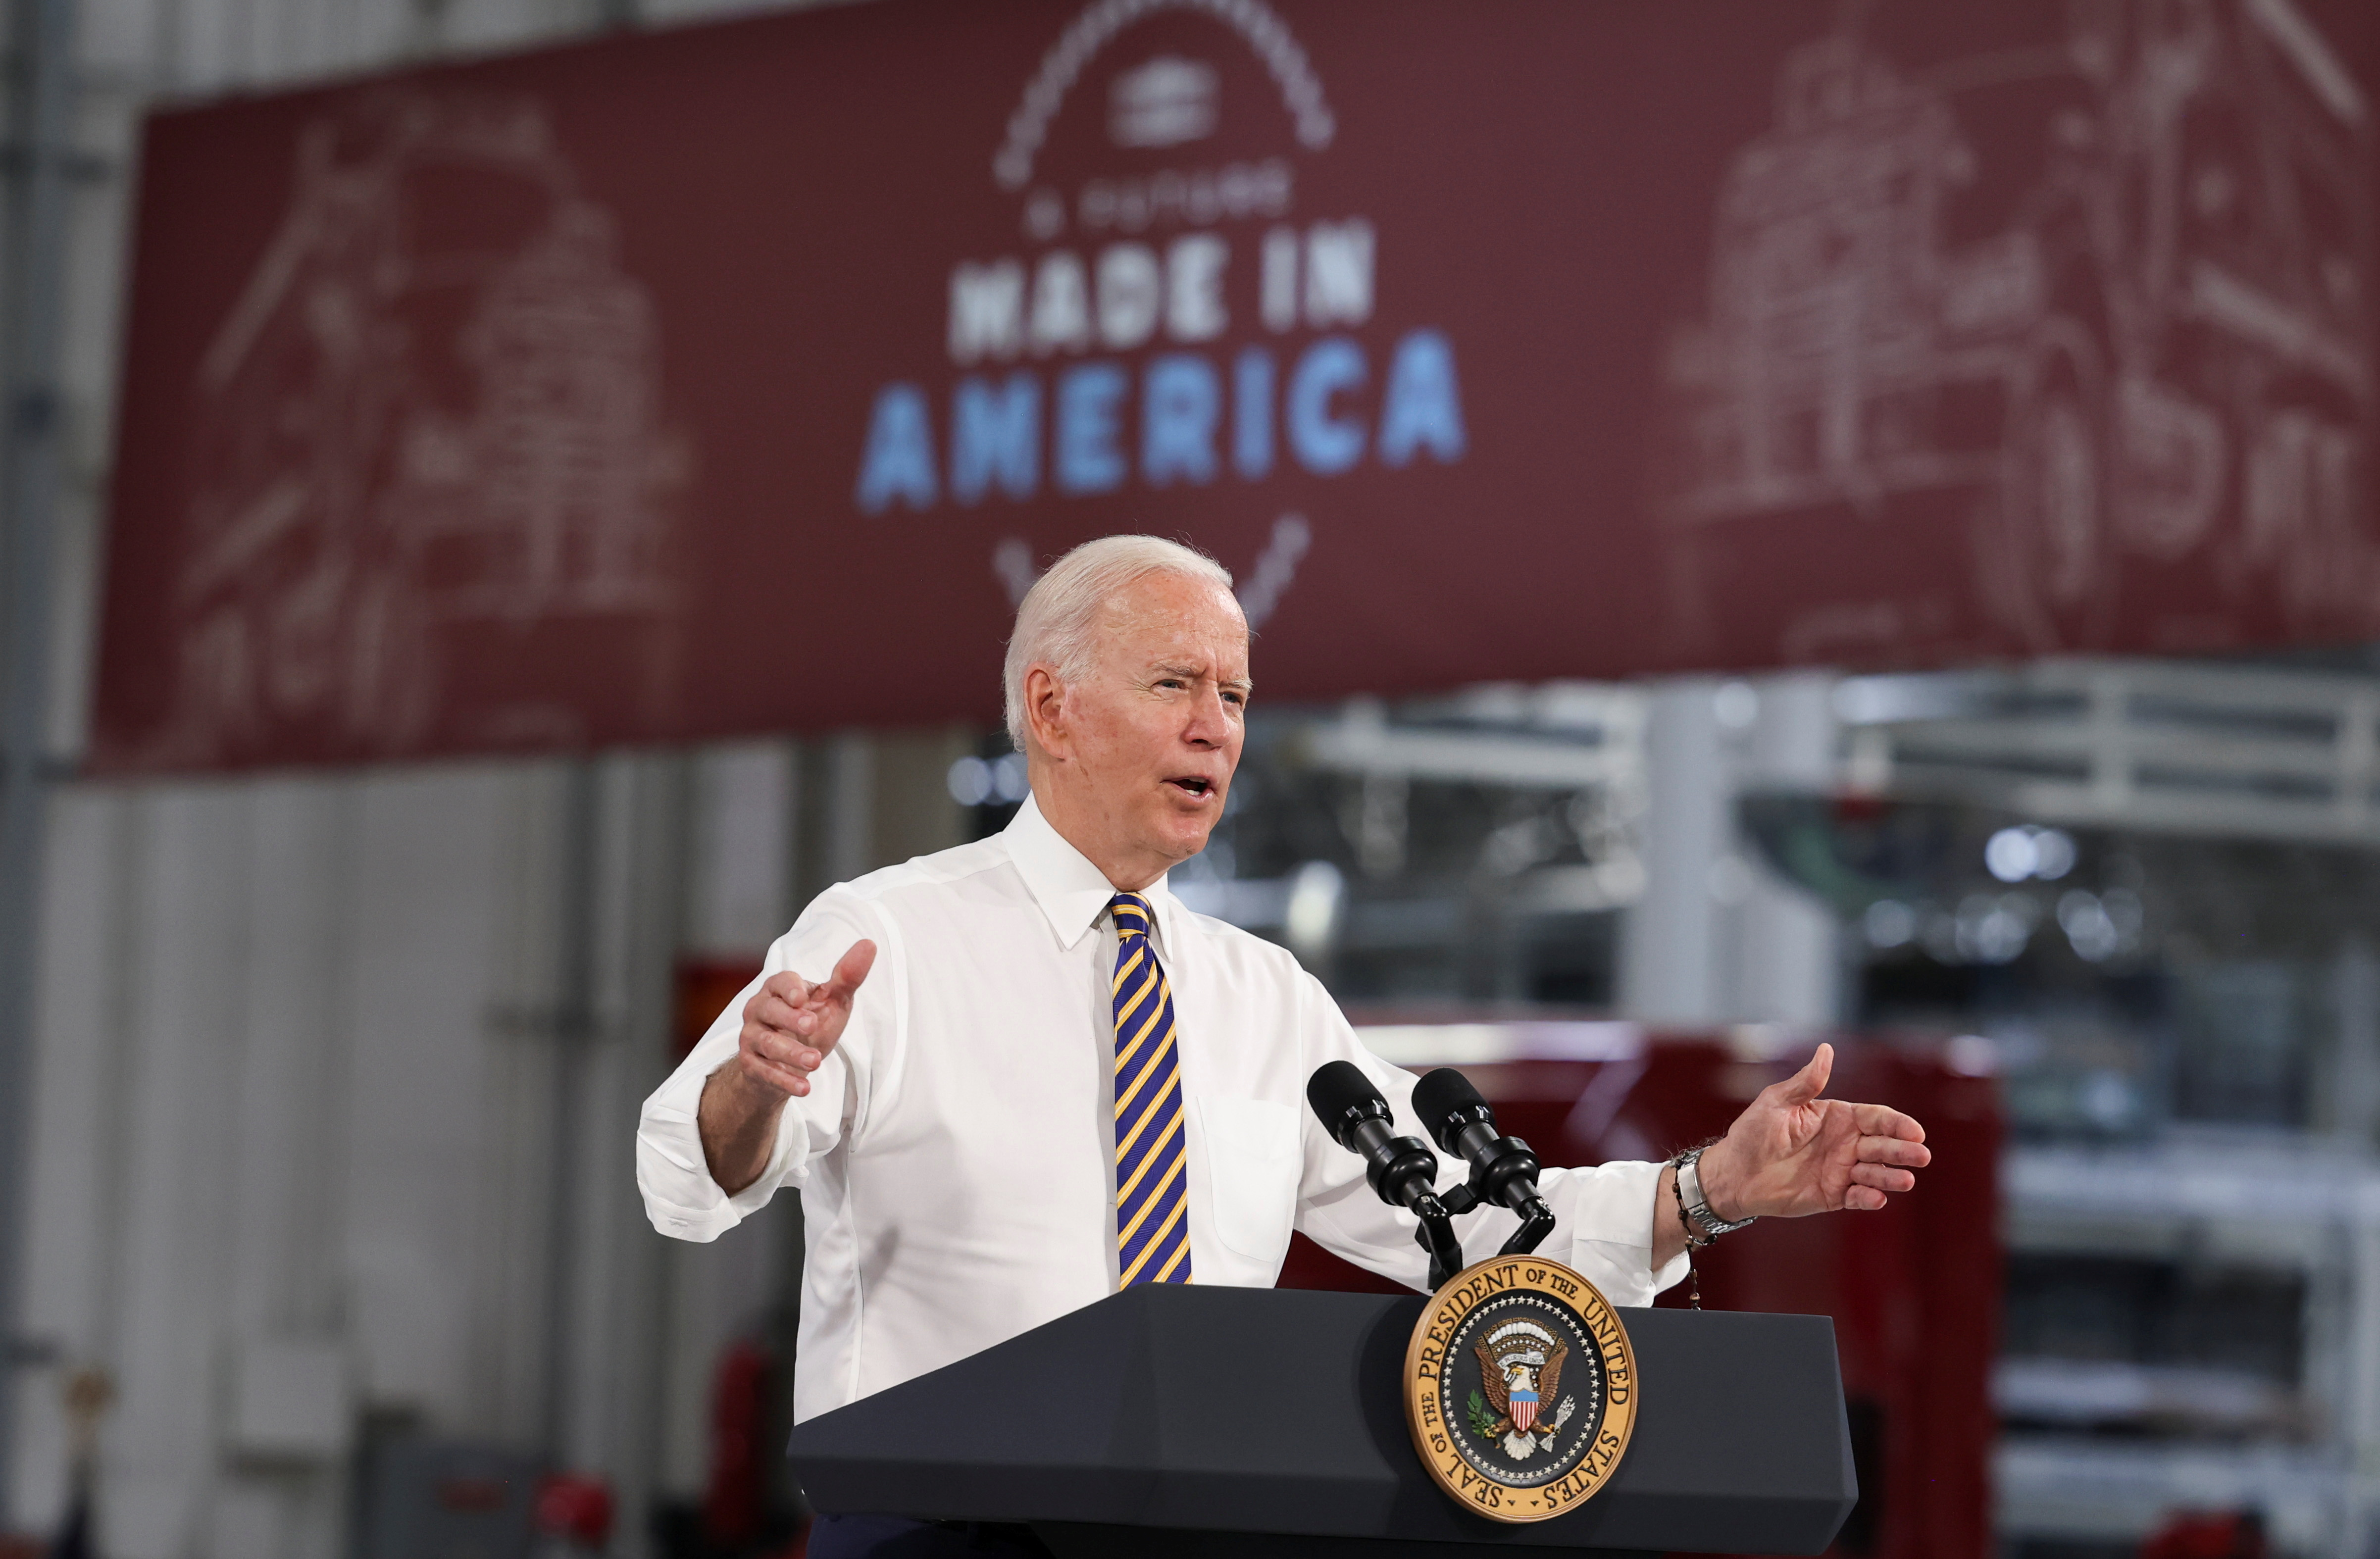 U.S. President Joe Biden speaks during a visit to the Mack-Lehigh Valley Operations Manufacturing Facility in Macungie, Pensylvania, U.S., July 28, 2021. REUTERS/Evelyn Hockstein